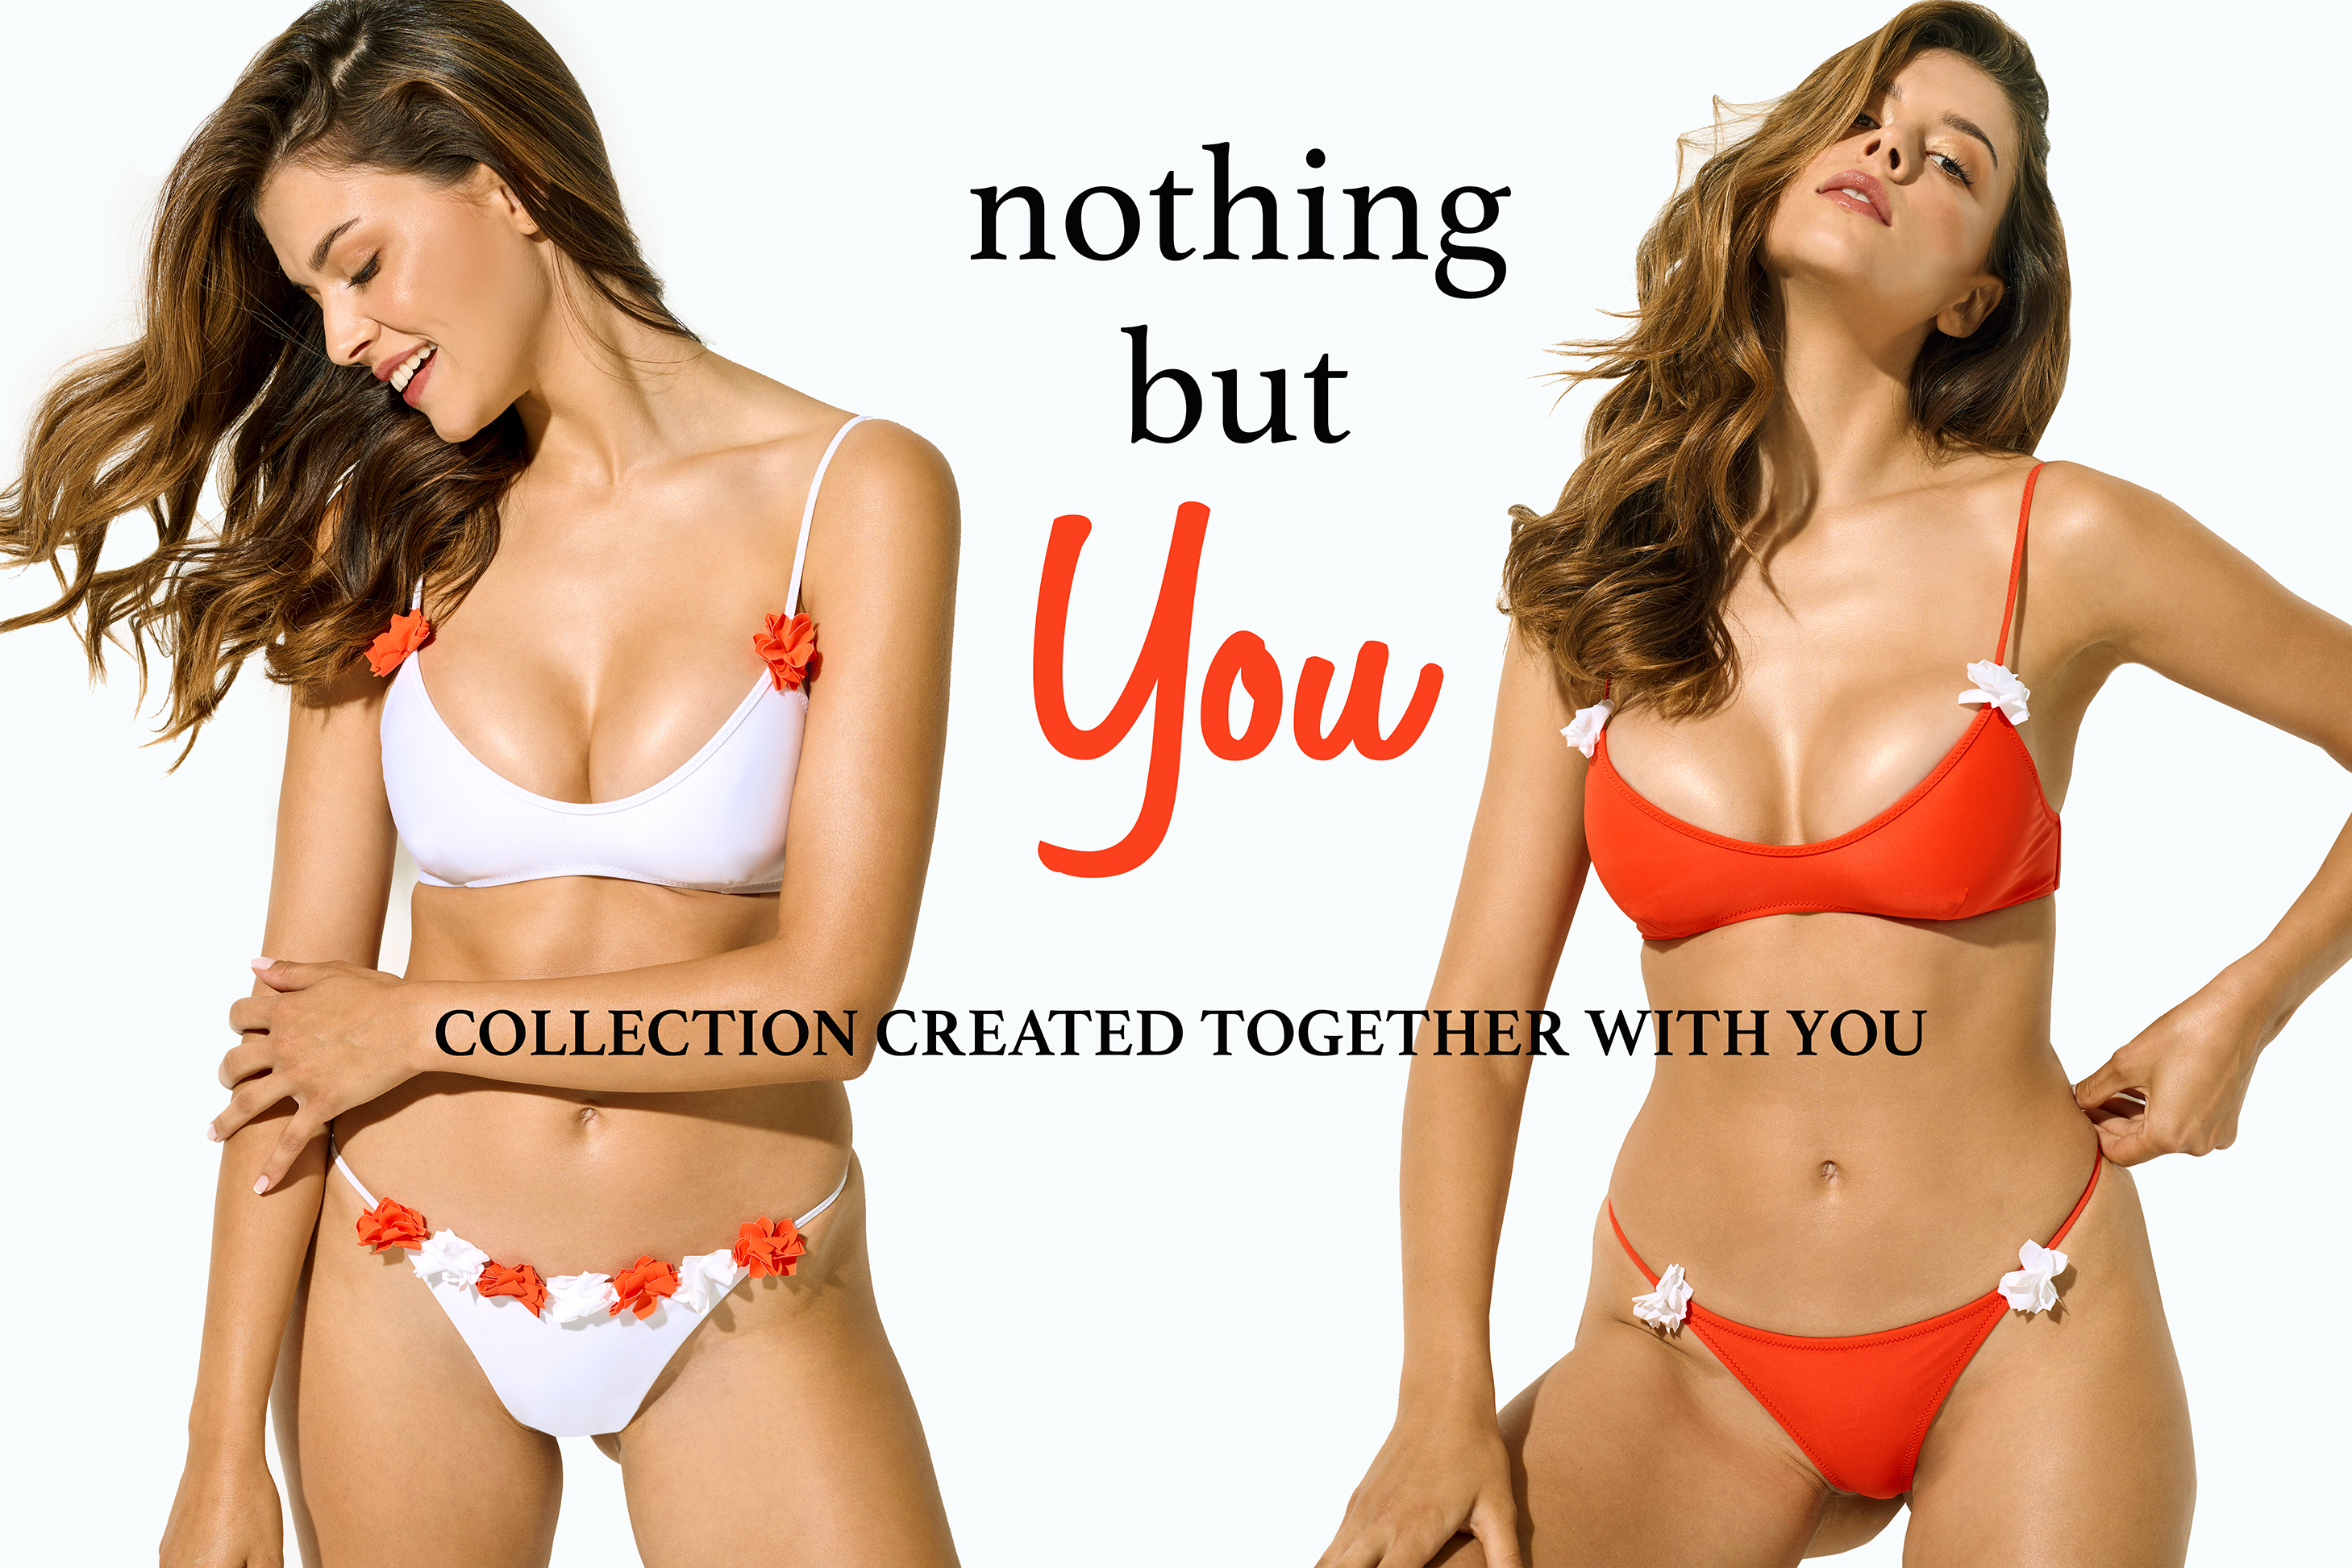 missionswim.com - nothing but you